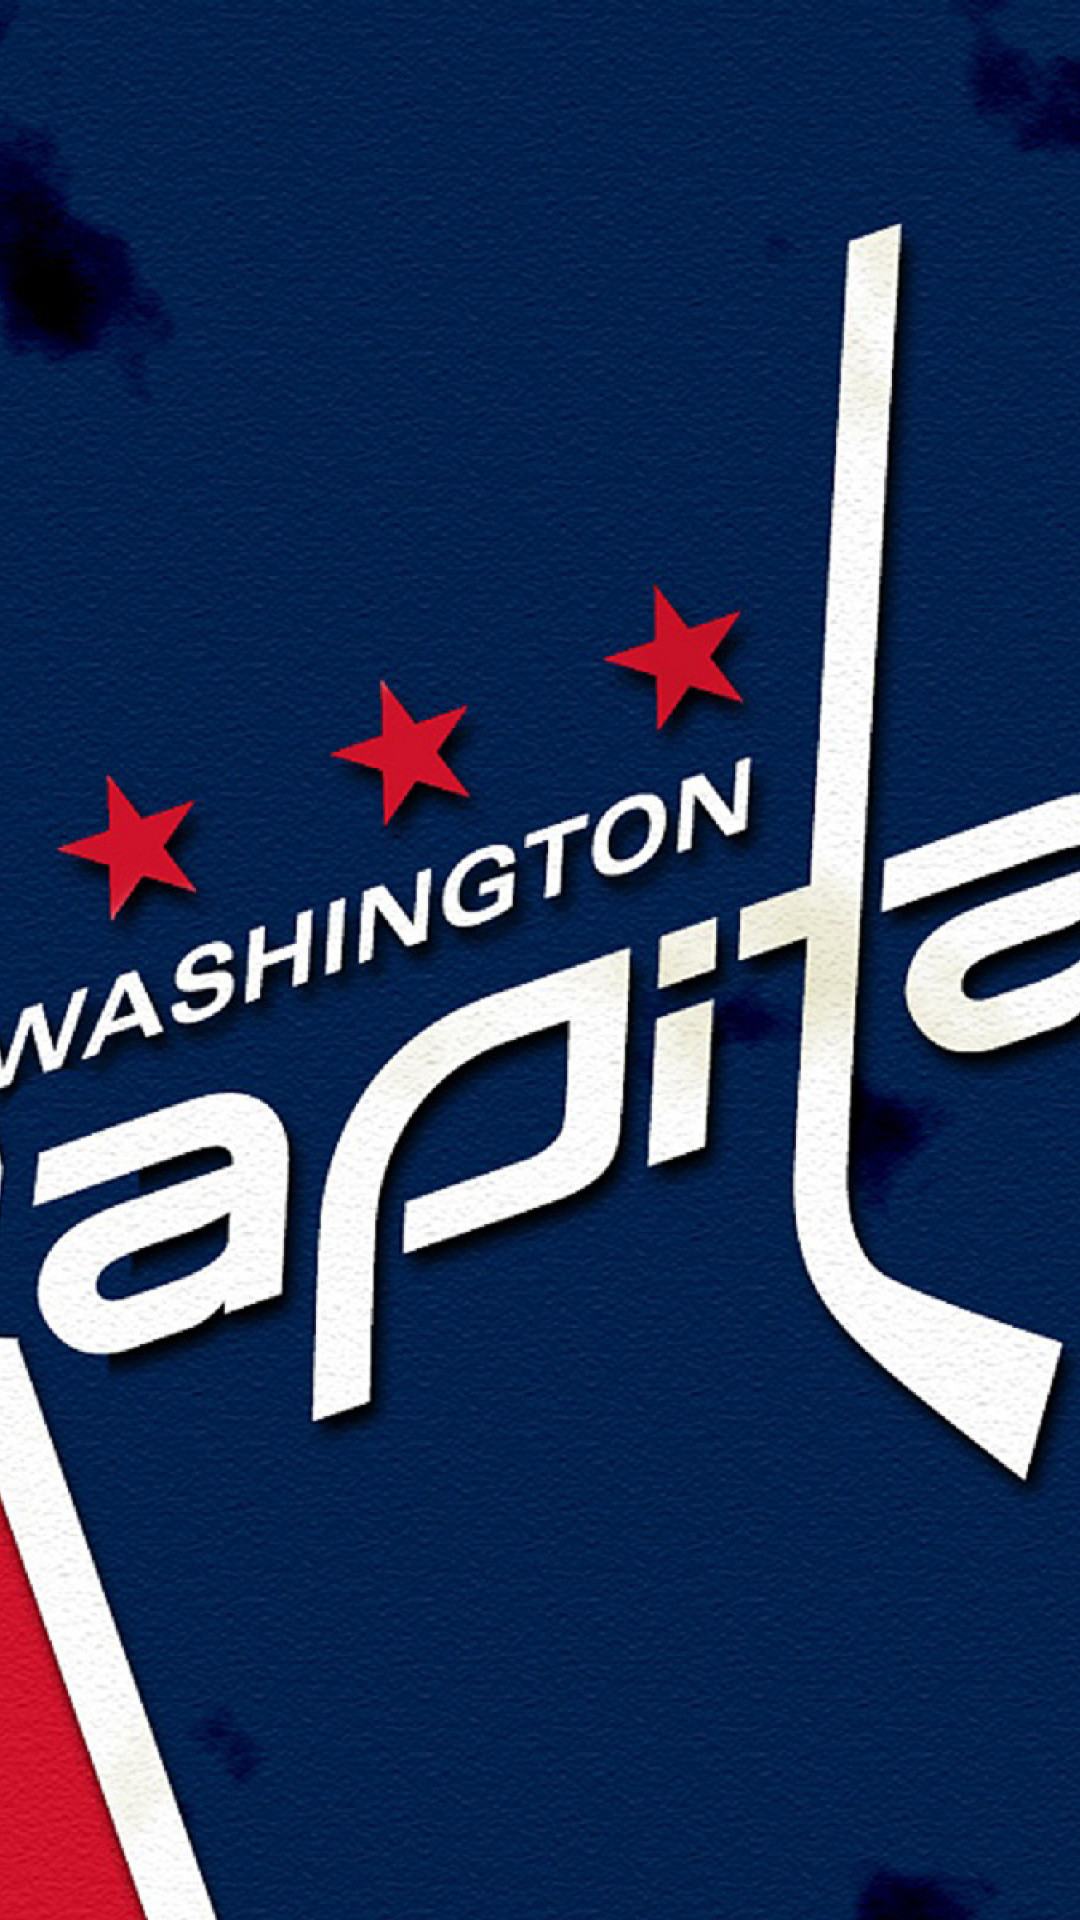 Hd Washington Capitals Wallpaper